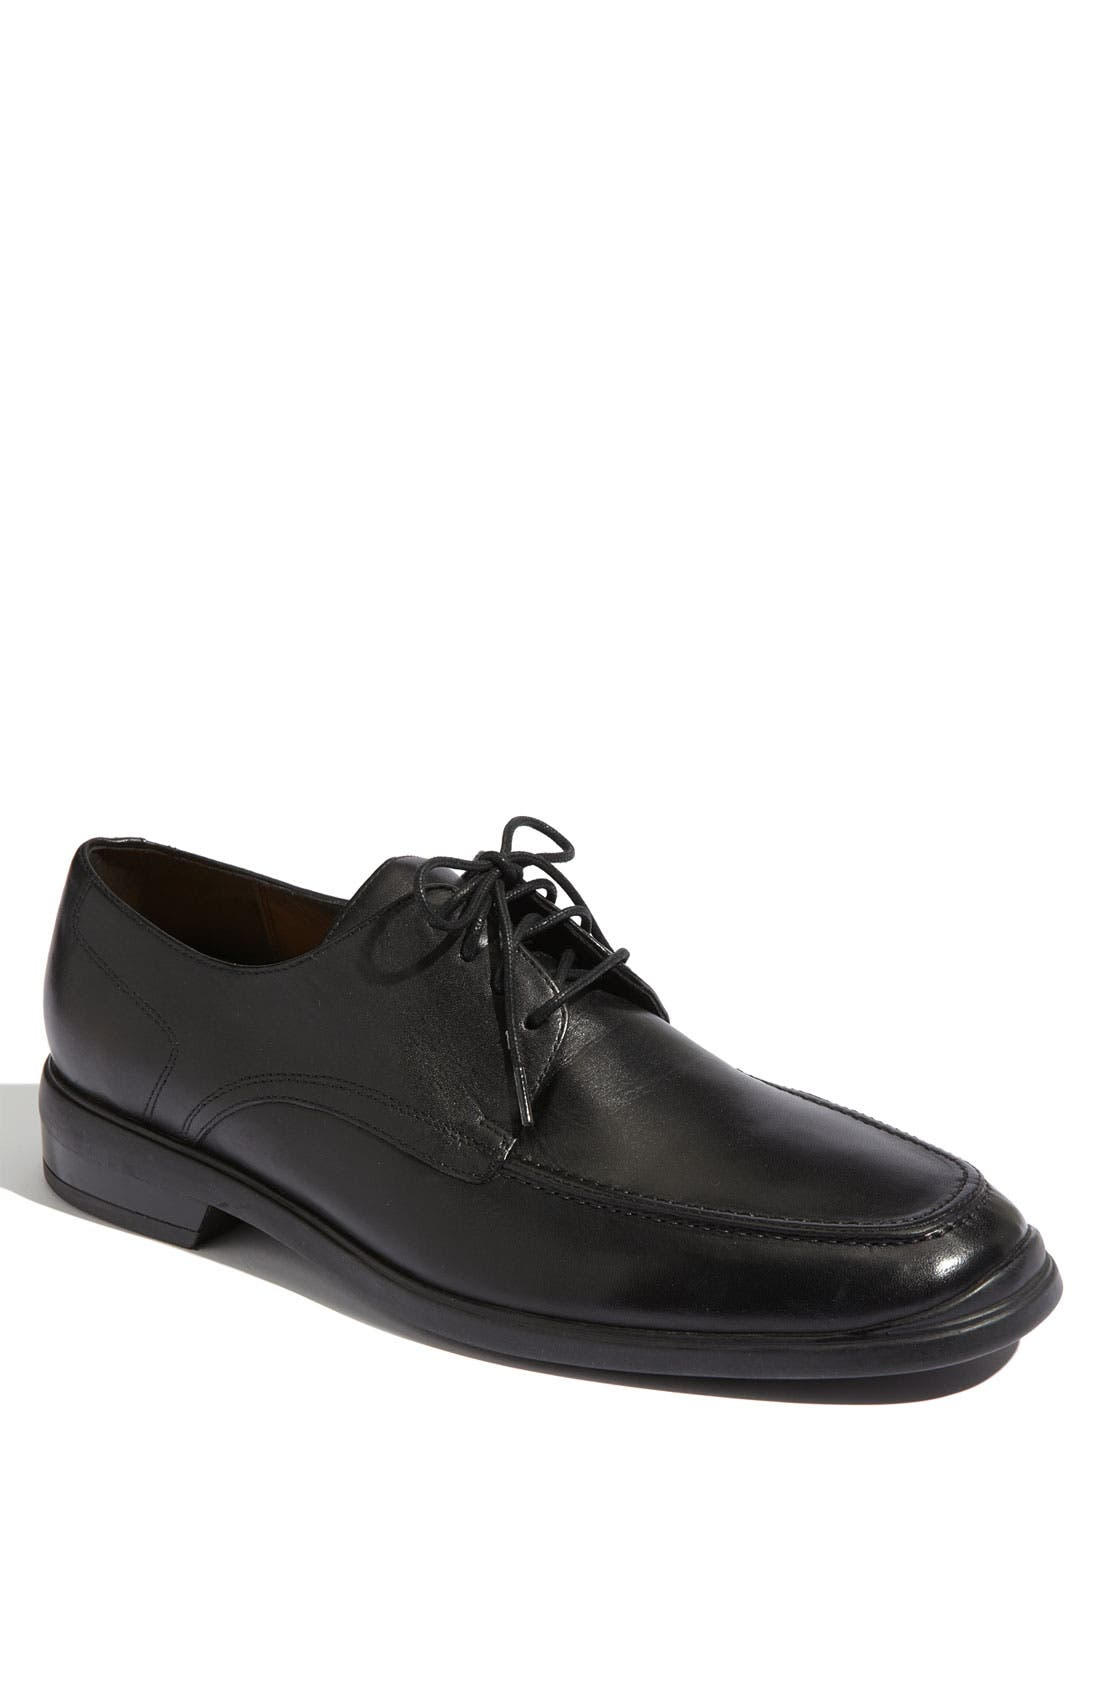 Alternate Image 1 Selected - Cole Haan 'Air Wallace' Oxford